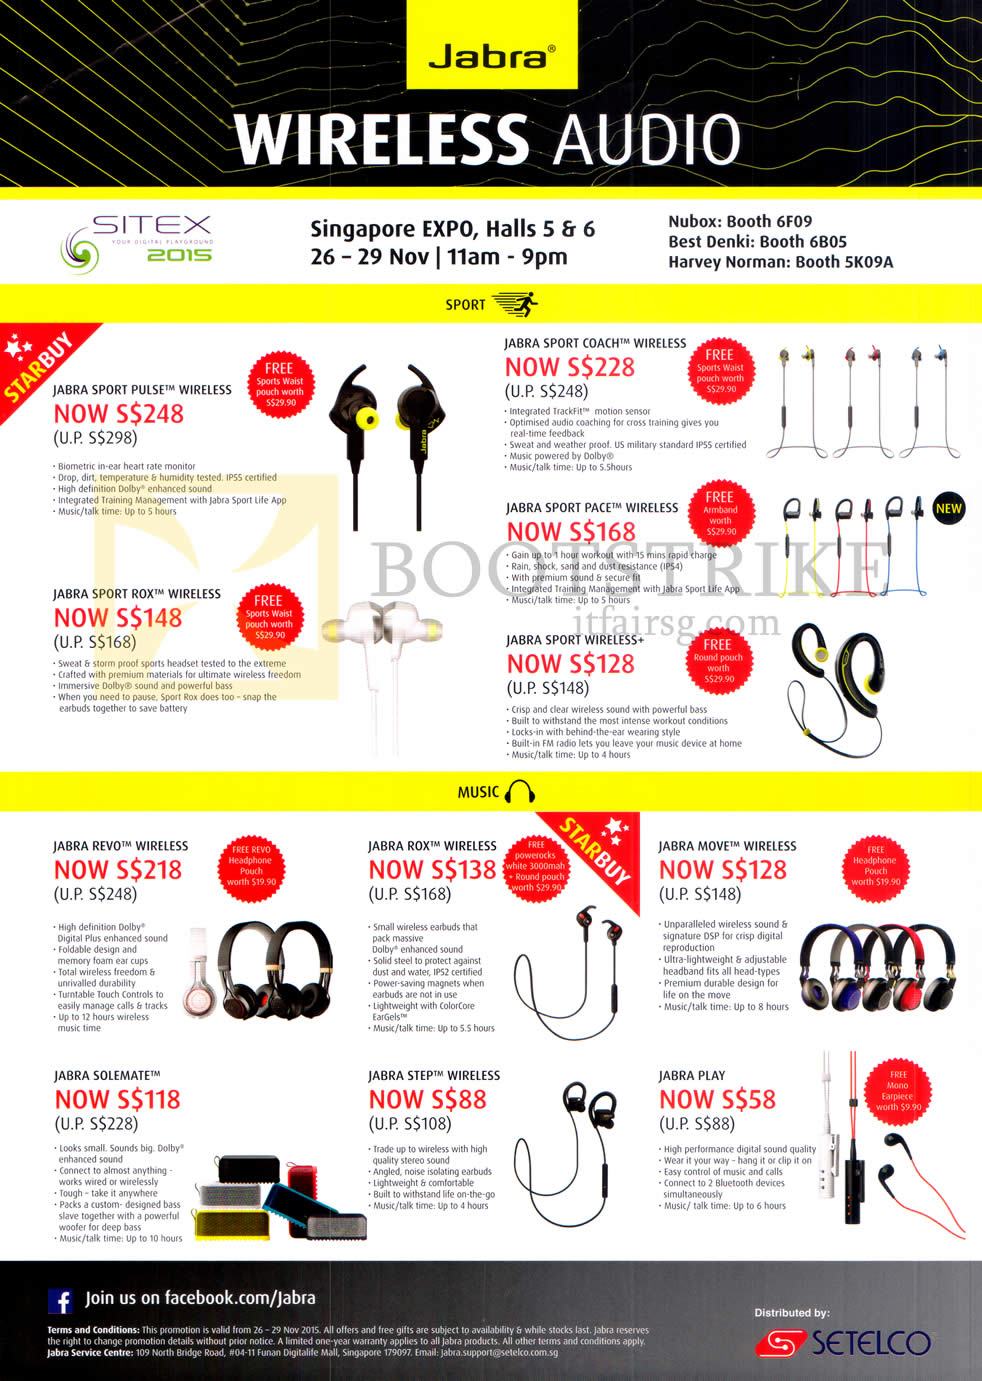 SITEX 2015 price list image brochure of Jabra Bluetooth Earphones, Jabra Sport Pulse, Rox, Coach, Pace, Sport Wireless, Revo, Rox, Move, Solemate, Step, Play